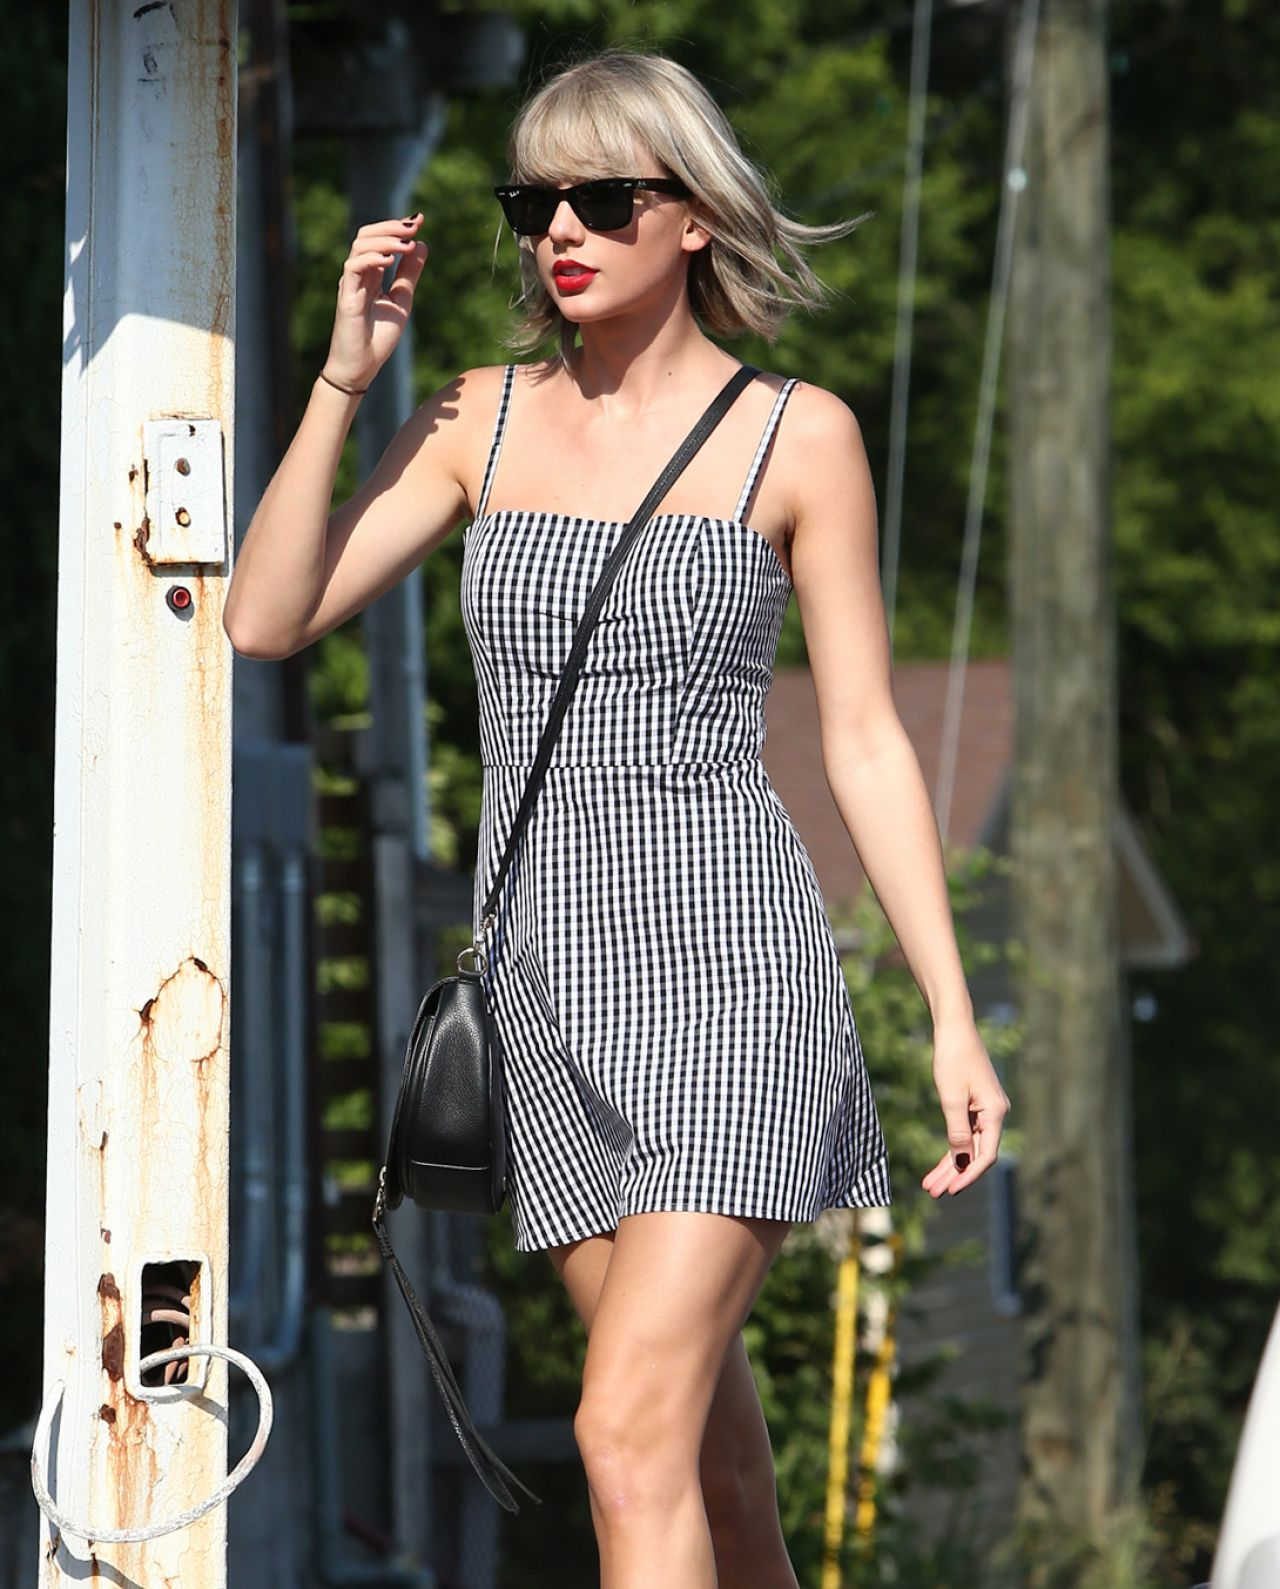 Taylor Swift Cute Outfit Out In Nashville 6 23 2016 Celebmafia